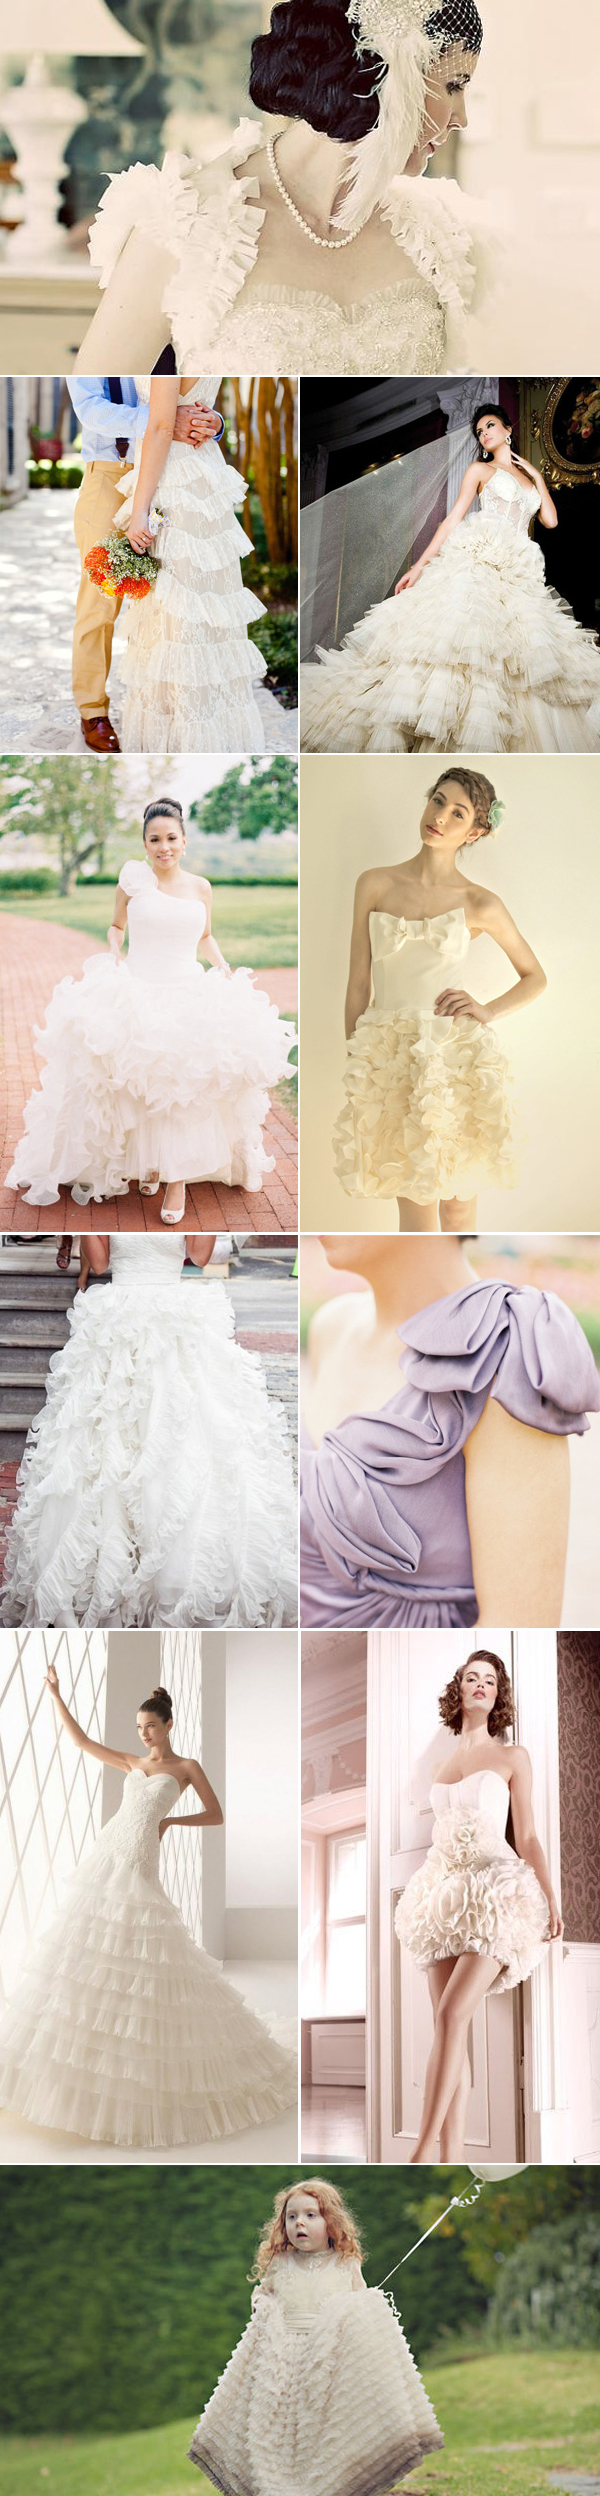 Ruffles on wedding dresses accessories and cakes the for The loft wedding dresses